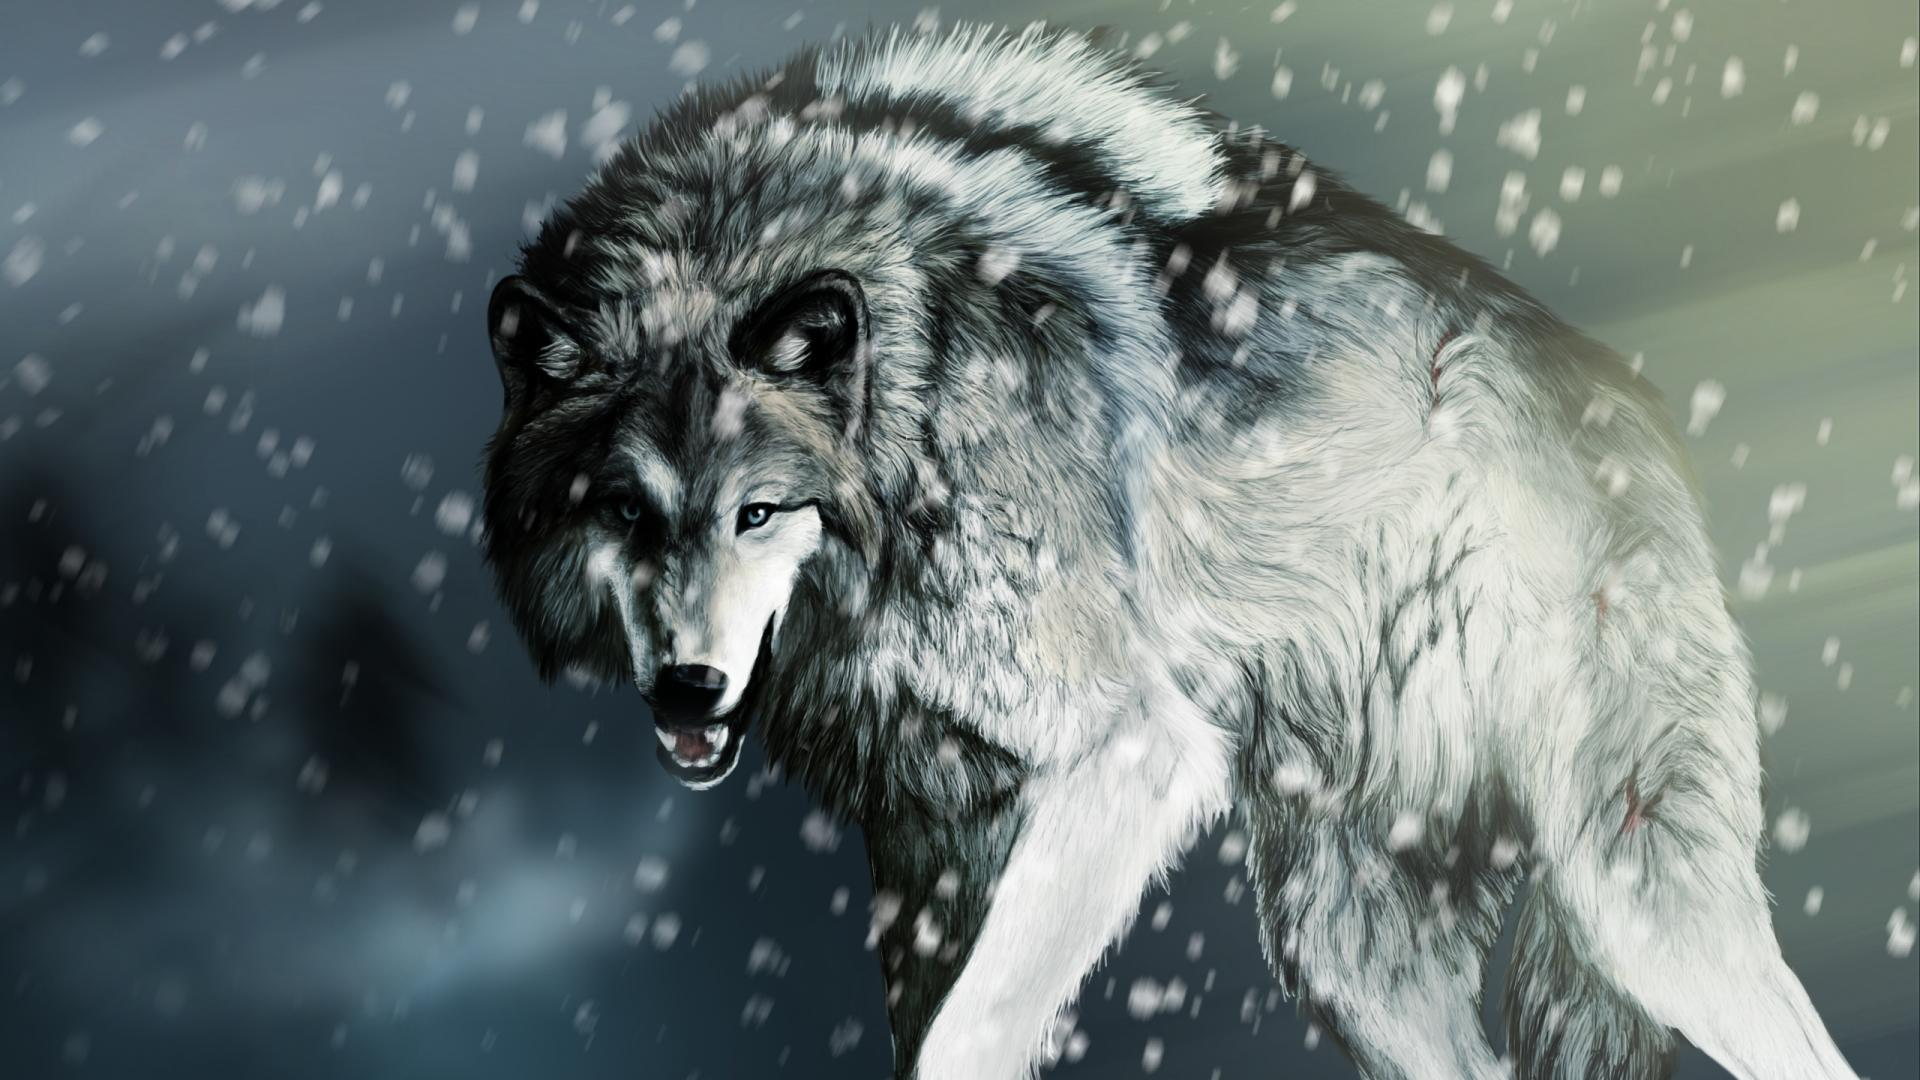 Wallpapers For > Cool Wolf Wallpapers Hd